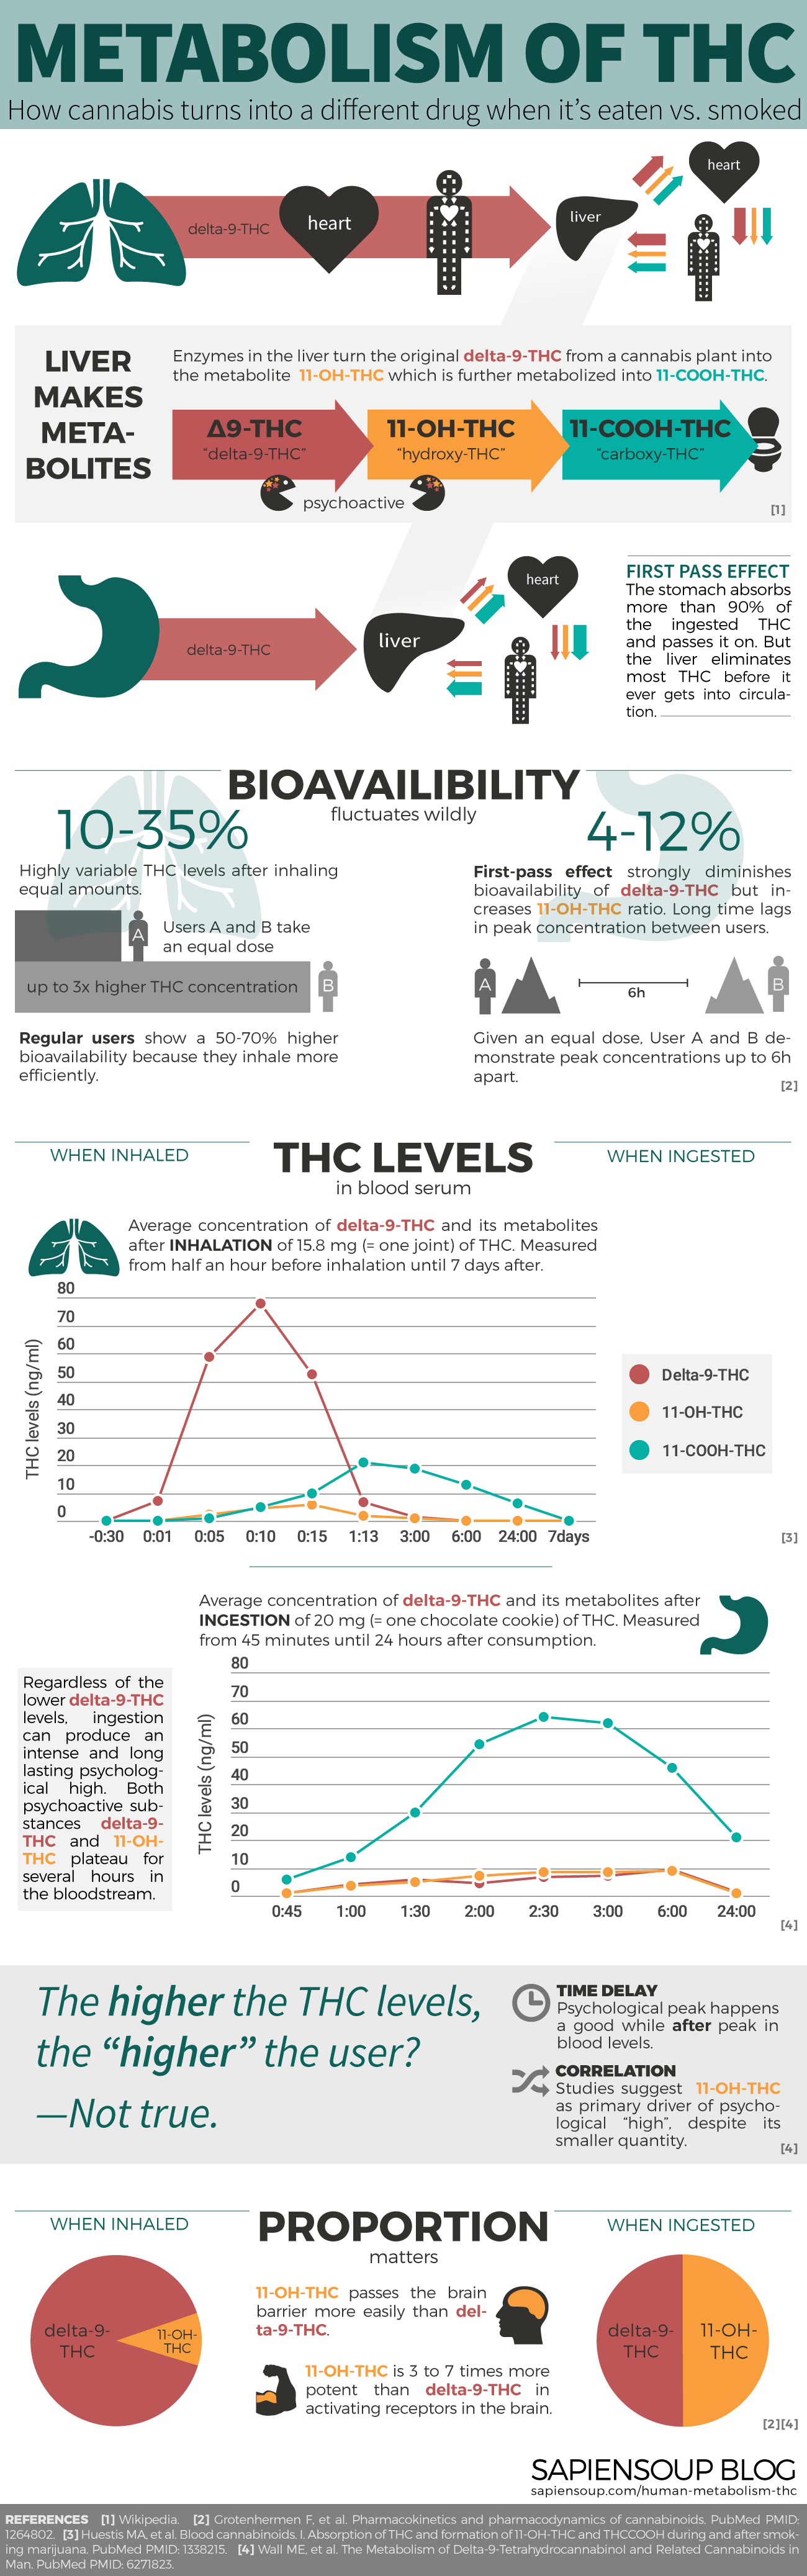 Human Metabolism of THC | Cannabis | Pinterest